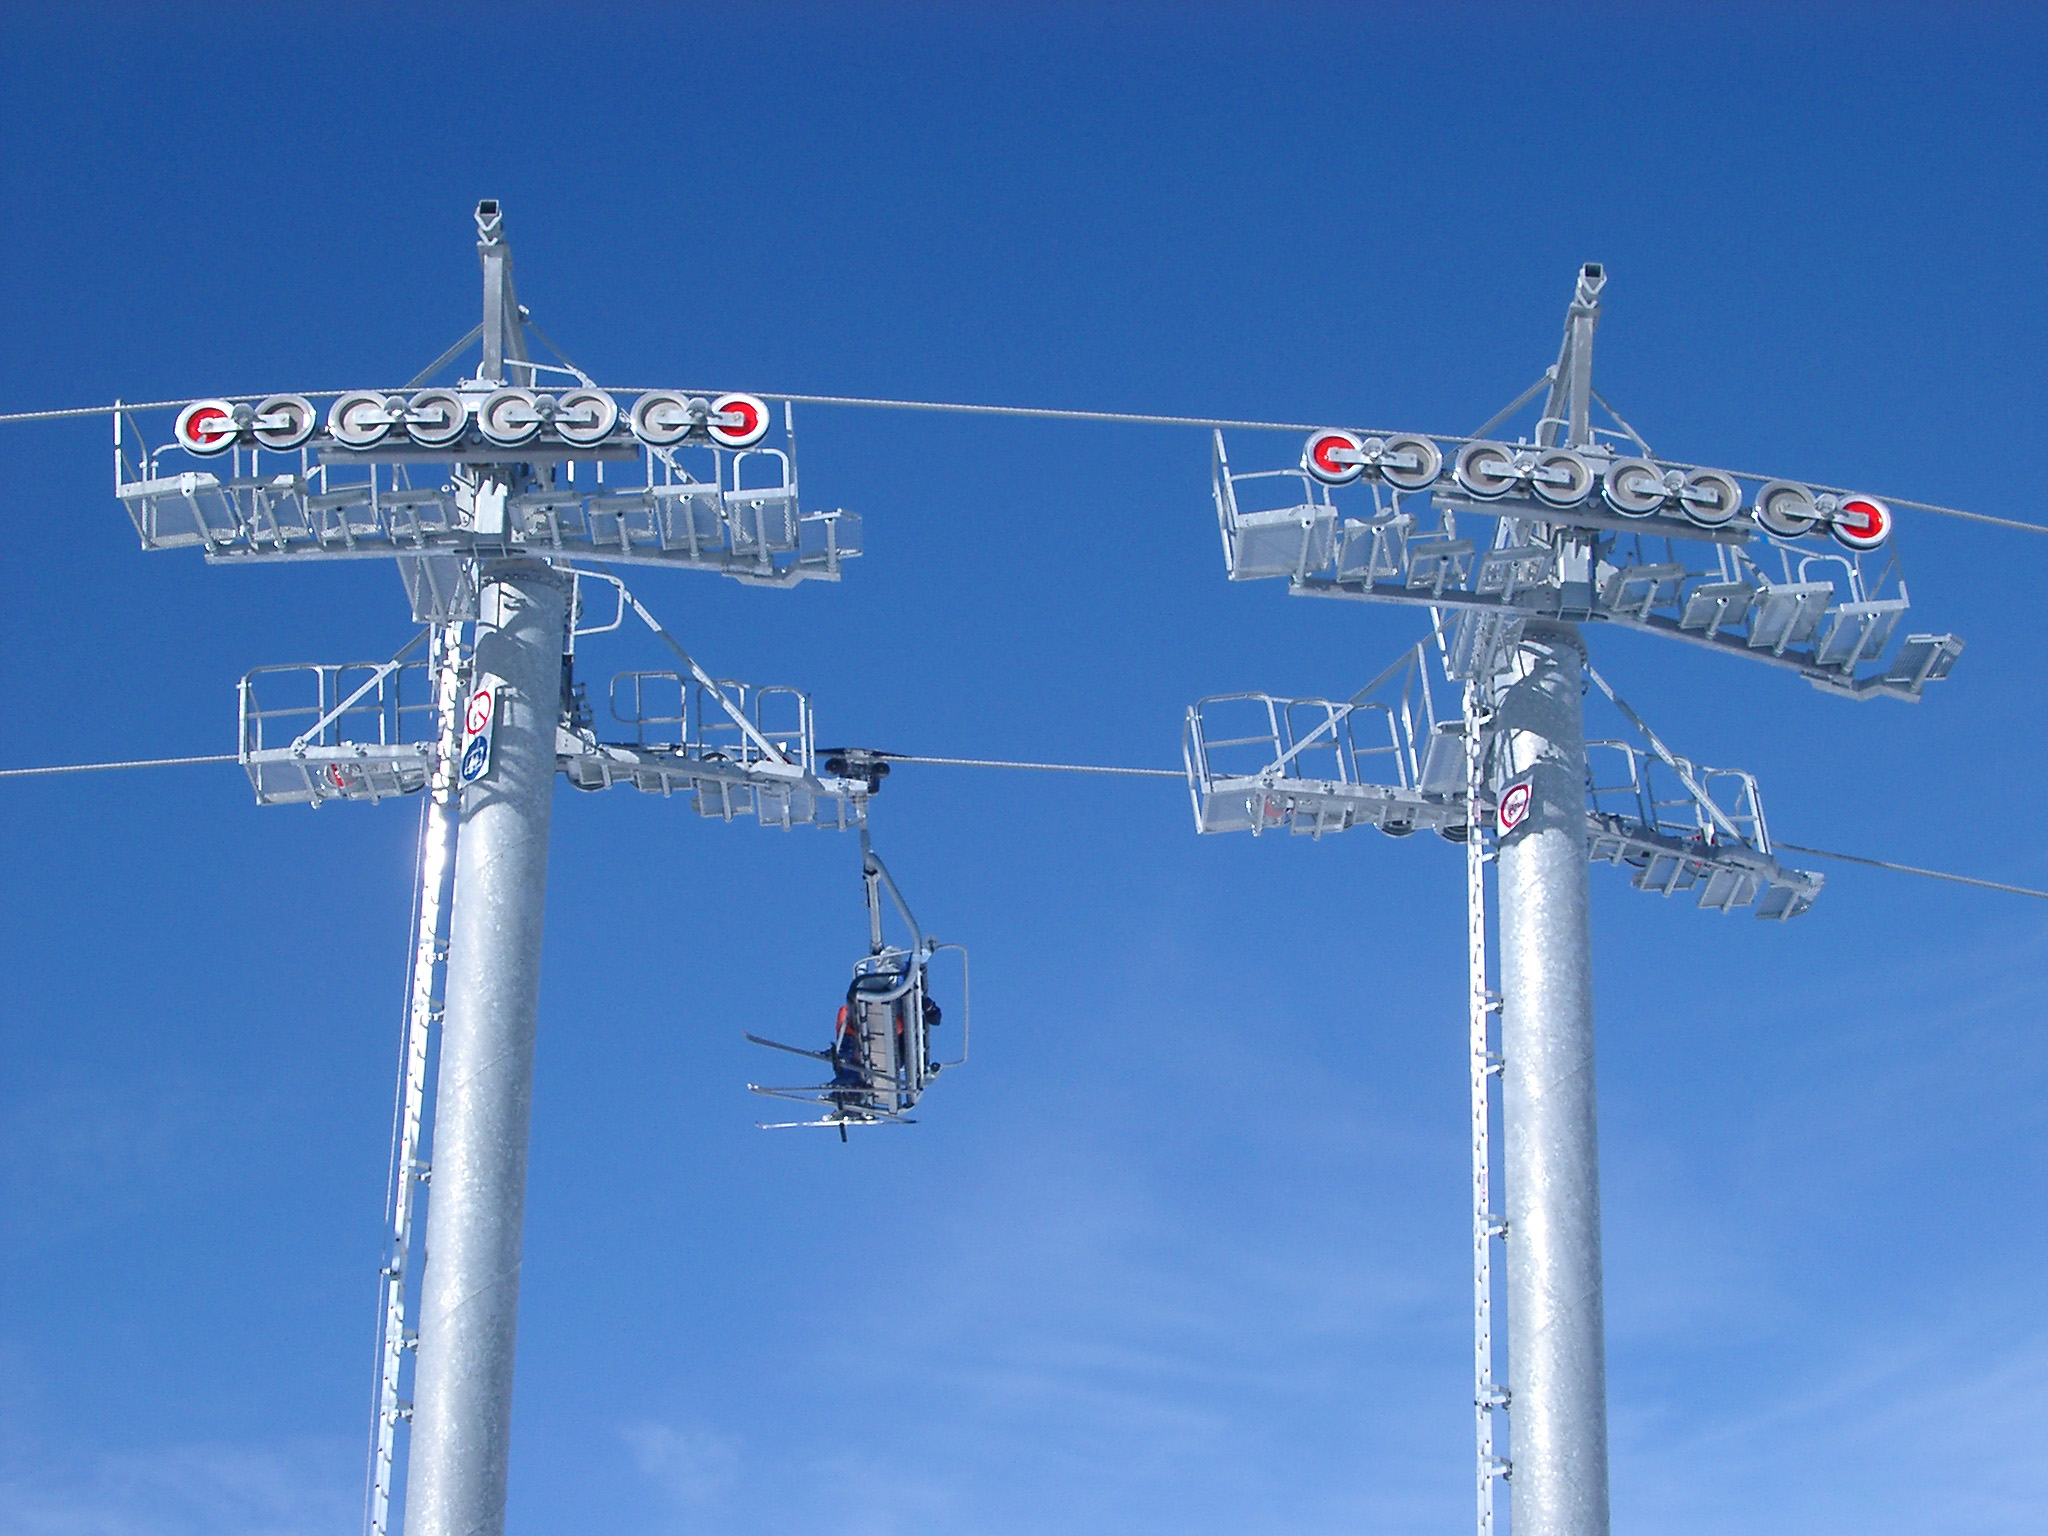 Empty Cable Cars on Light Blue Sky Background.